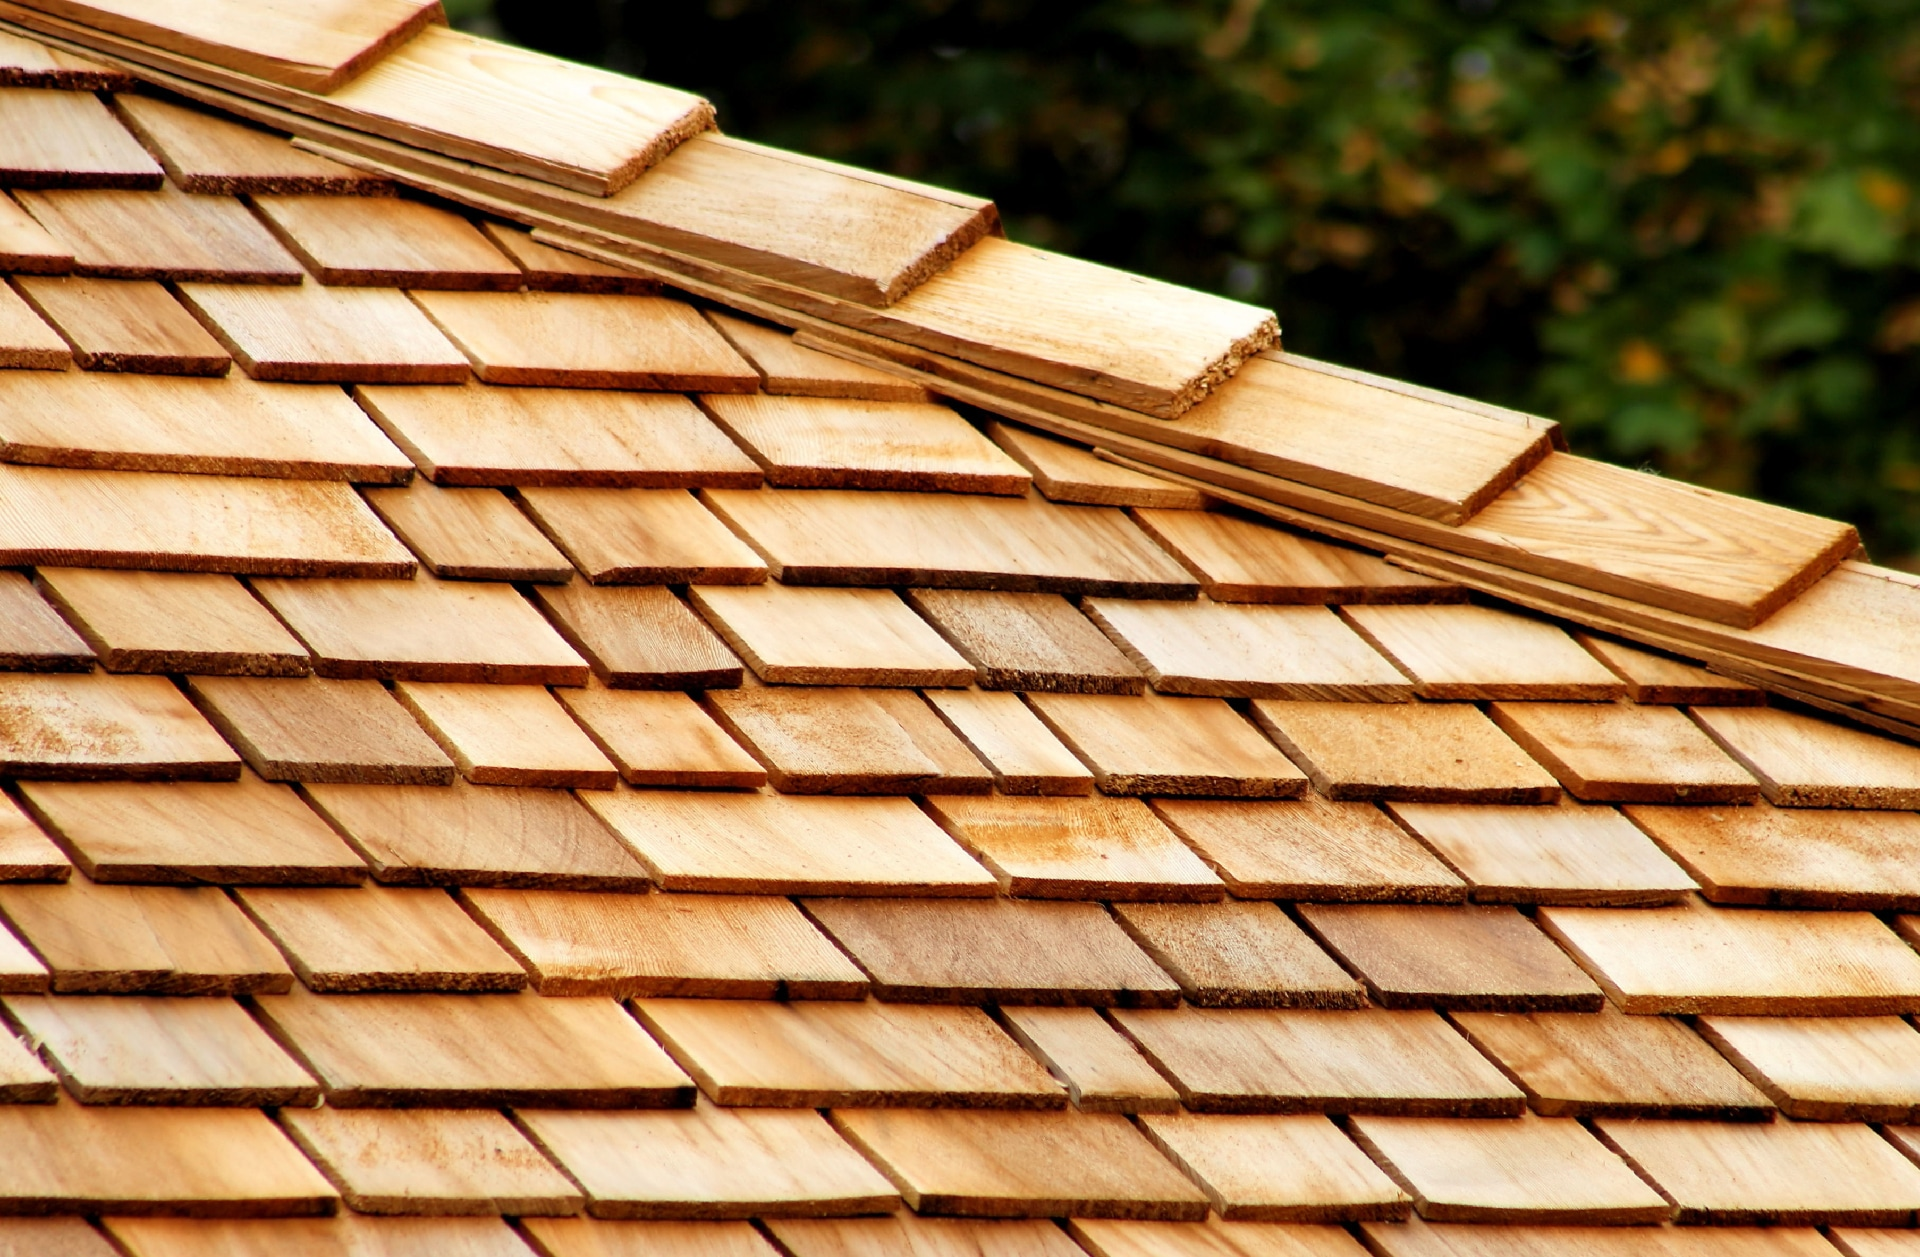 Wooden shingles on a sloped roof.